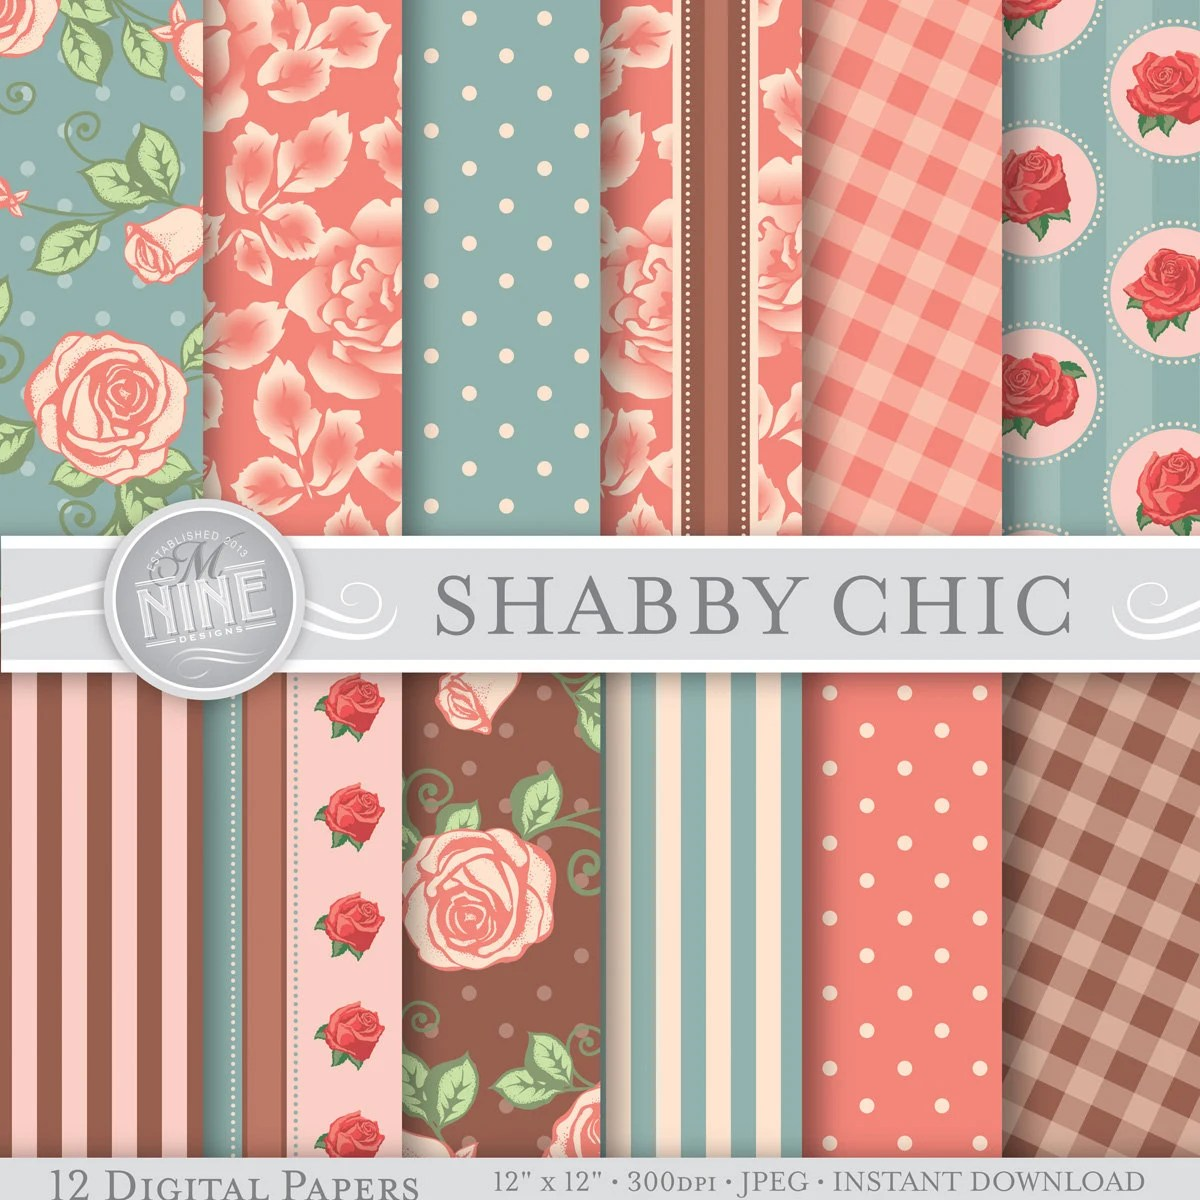 VINTAGE SHABBY CHIC Patterns 12 x 12 Digital Paper